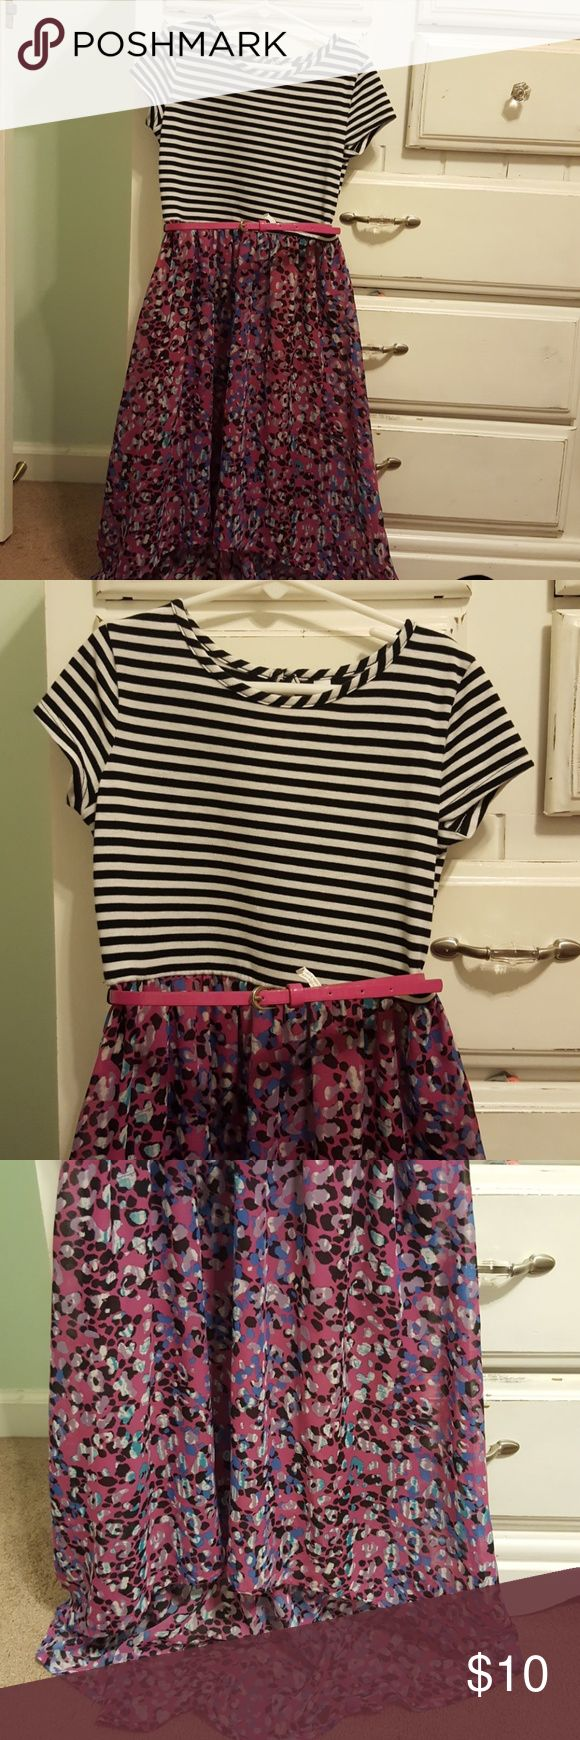 Girls short sleeve dress I loved this dress for all occasions Black and white short sleeve top with a flowing purple bottom belt  loops are intact comes with matching purple belt Xhilaration Dresses Casual